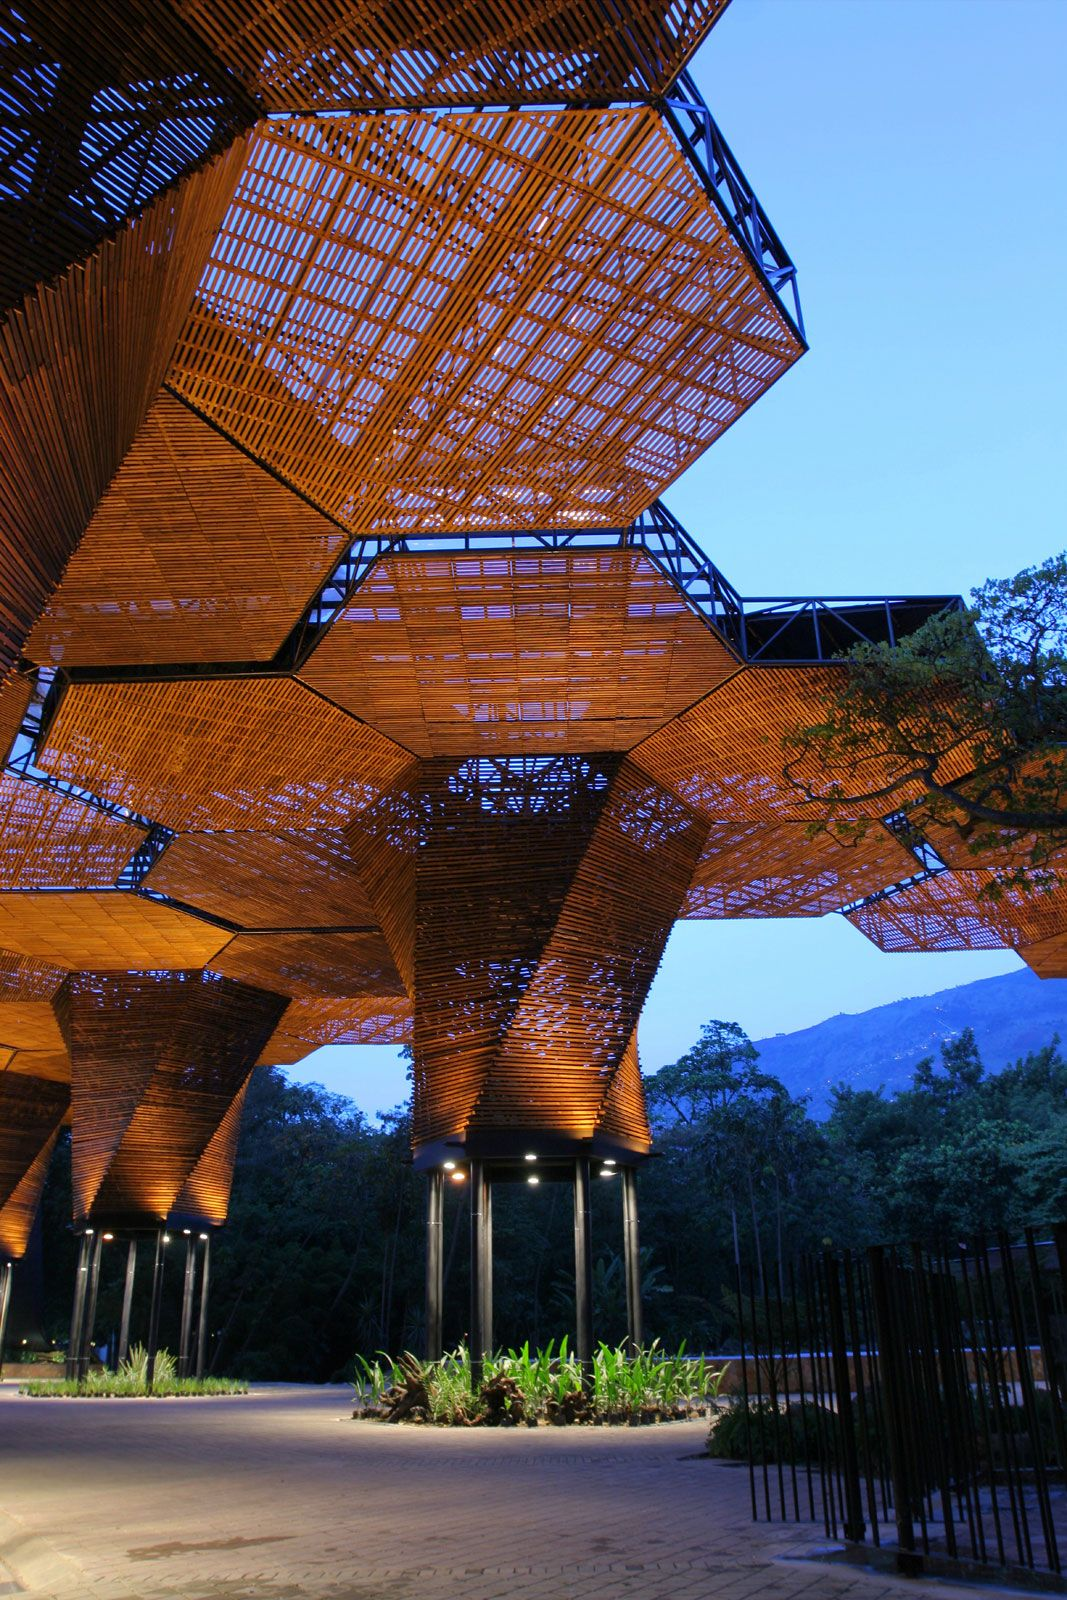 Orquideorama Park - Medellin, Colombia - Botanical Garden - Architect: Plan B and JPRCR Studies